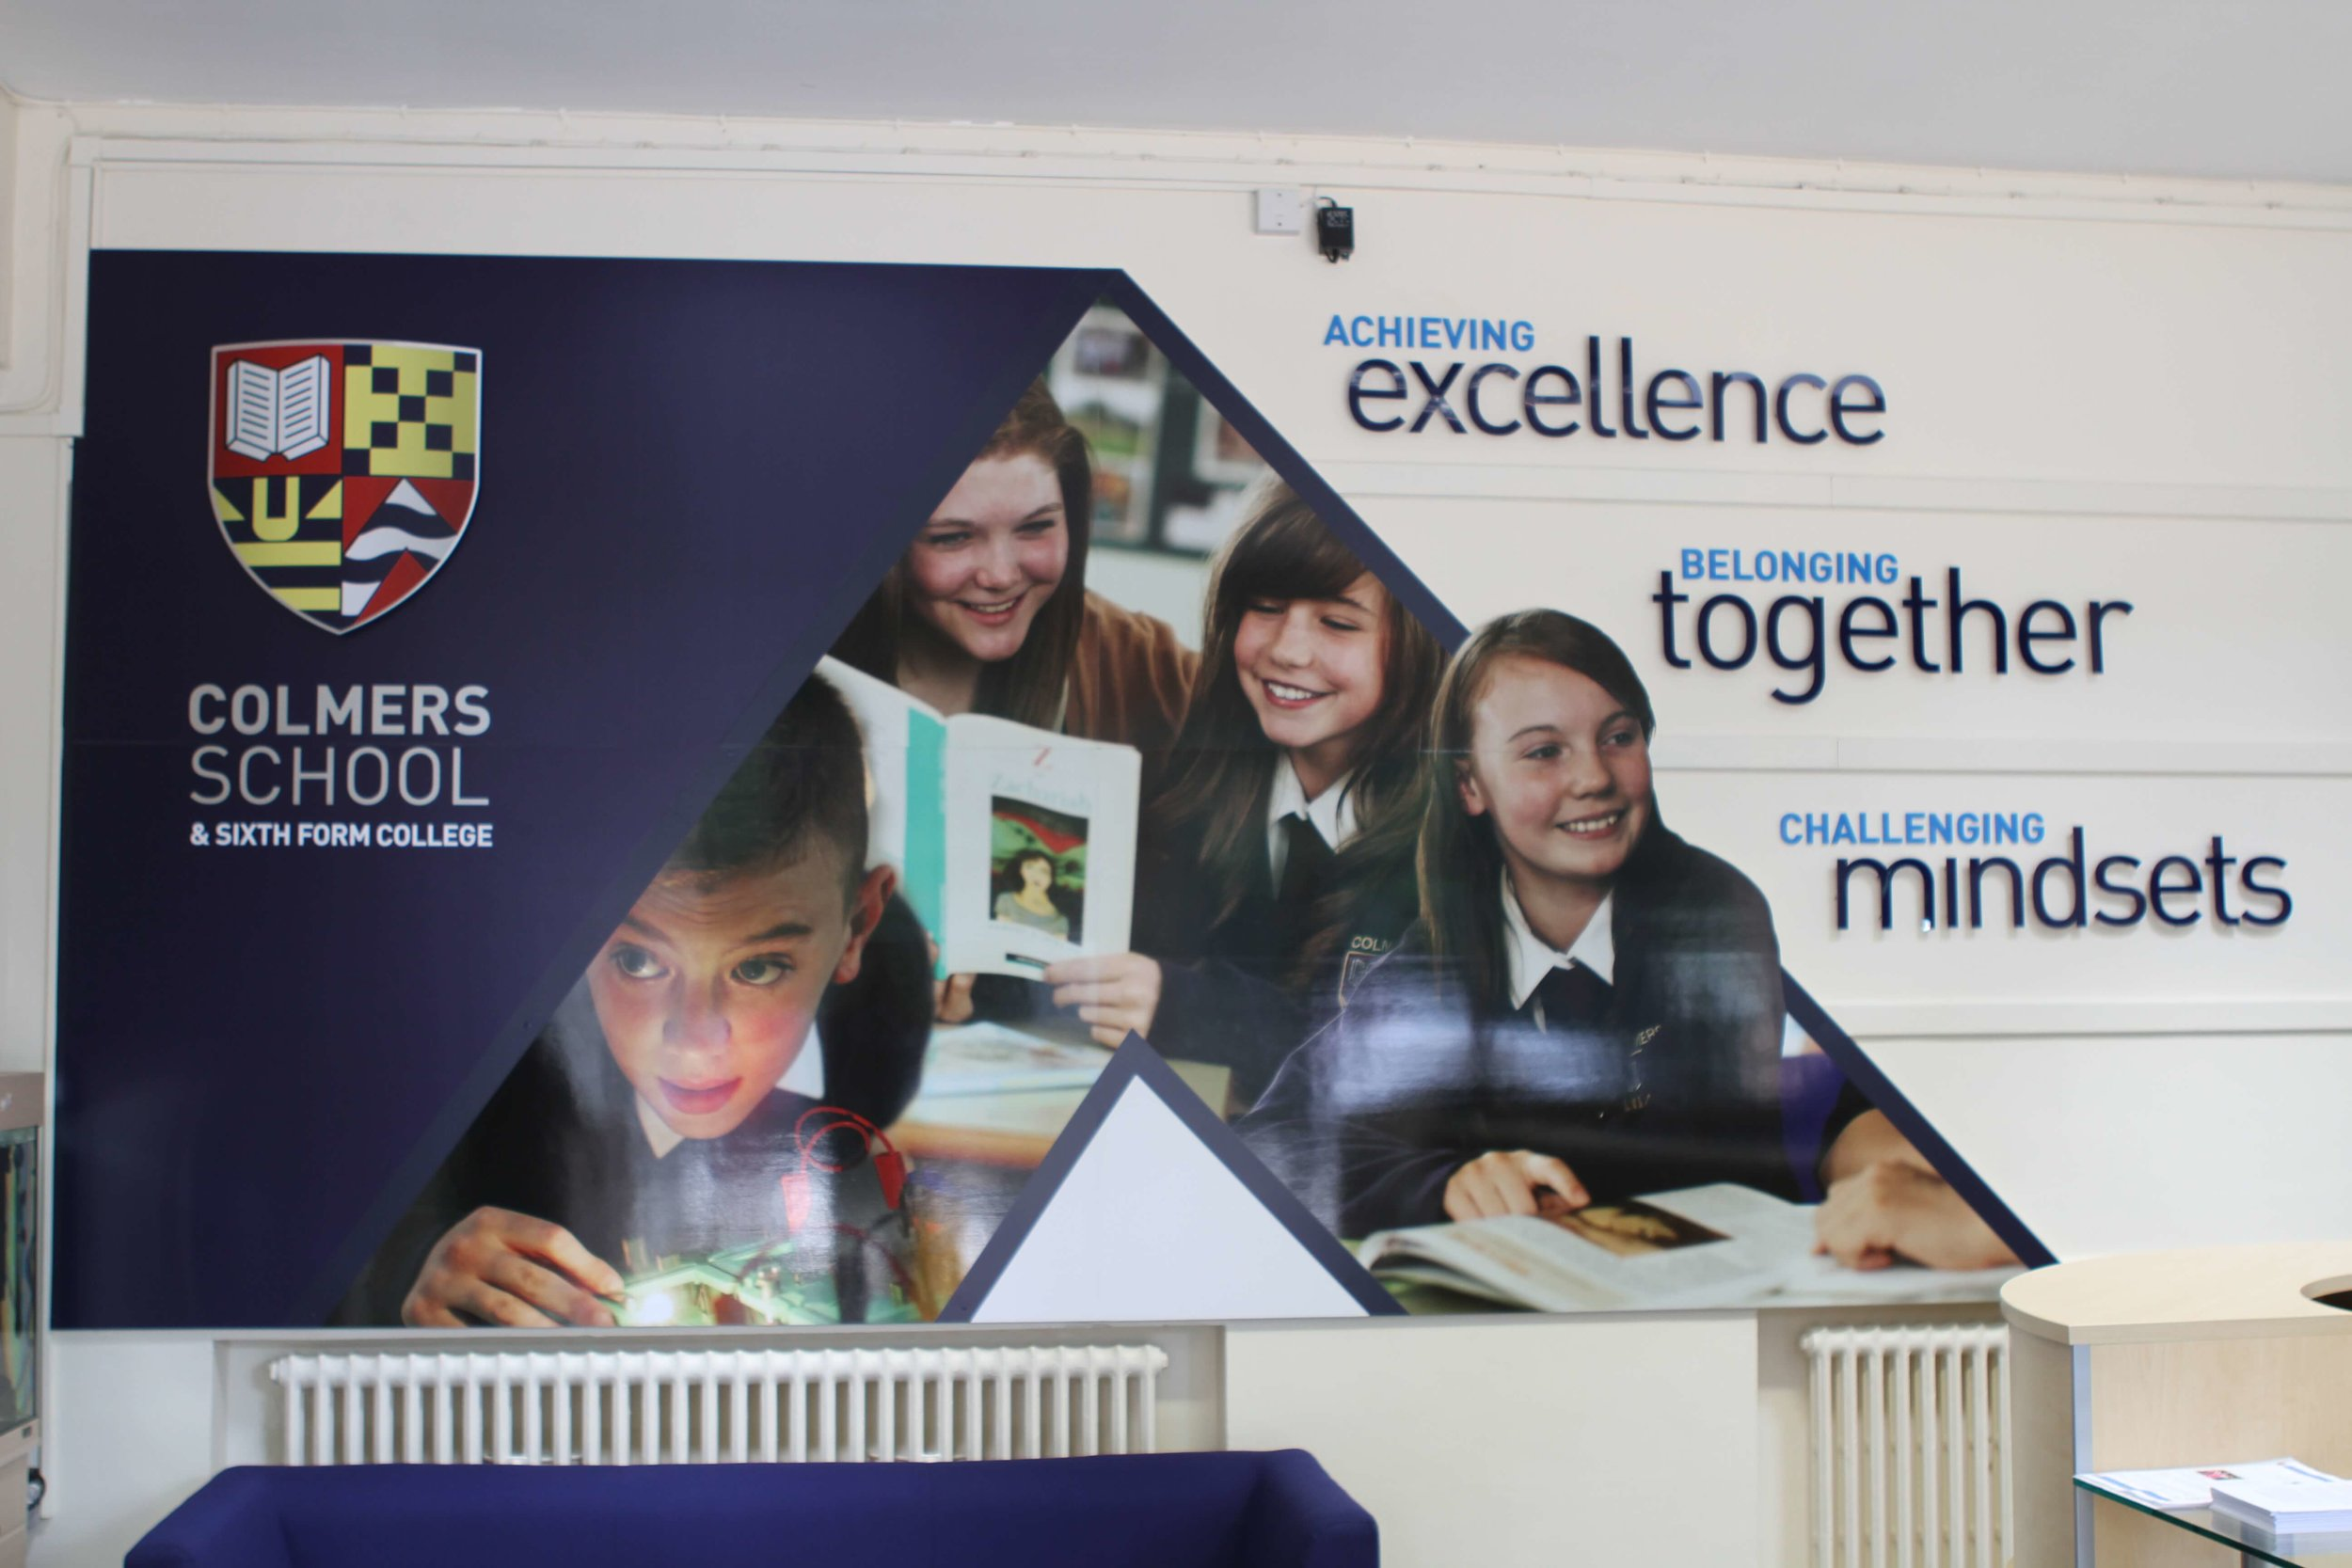 Colmers school brand wall graphic, school wall graphic design